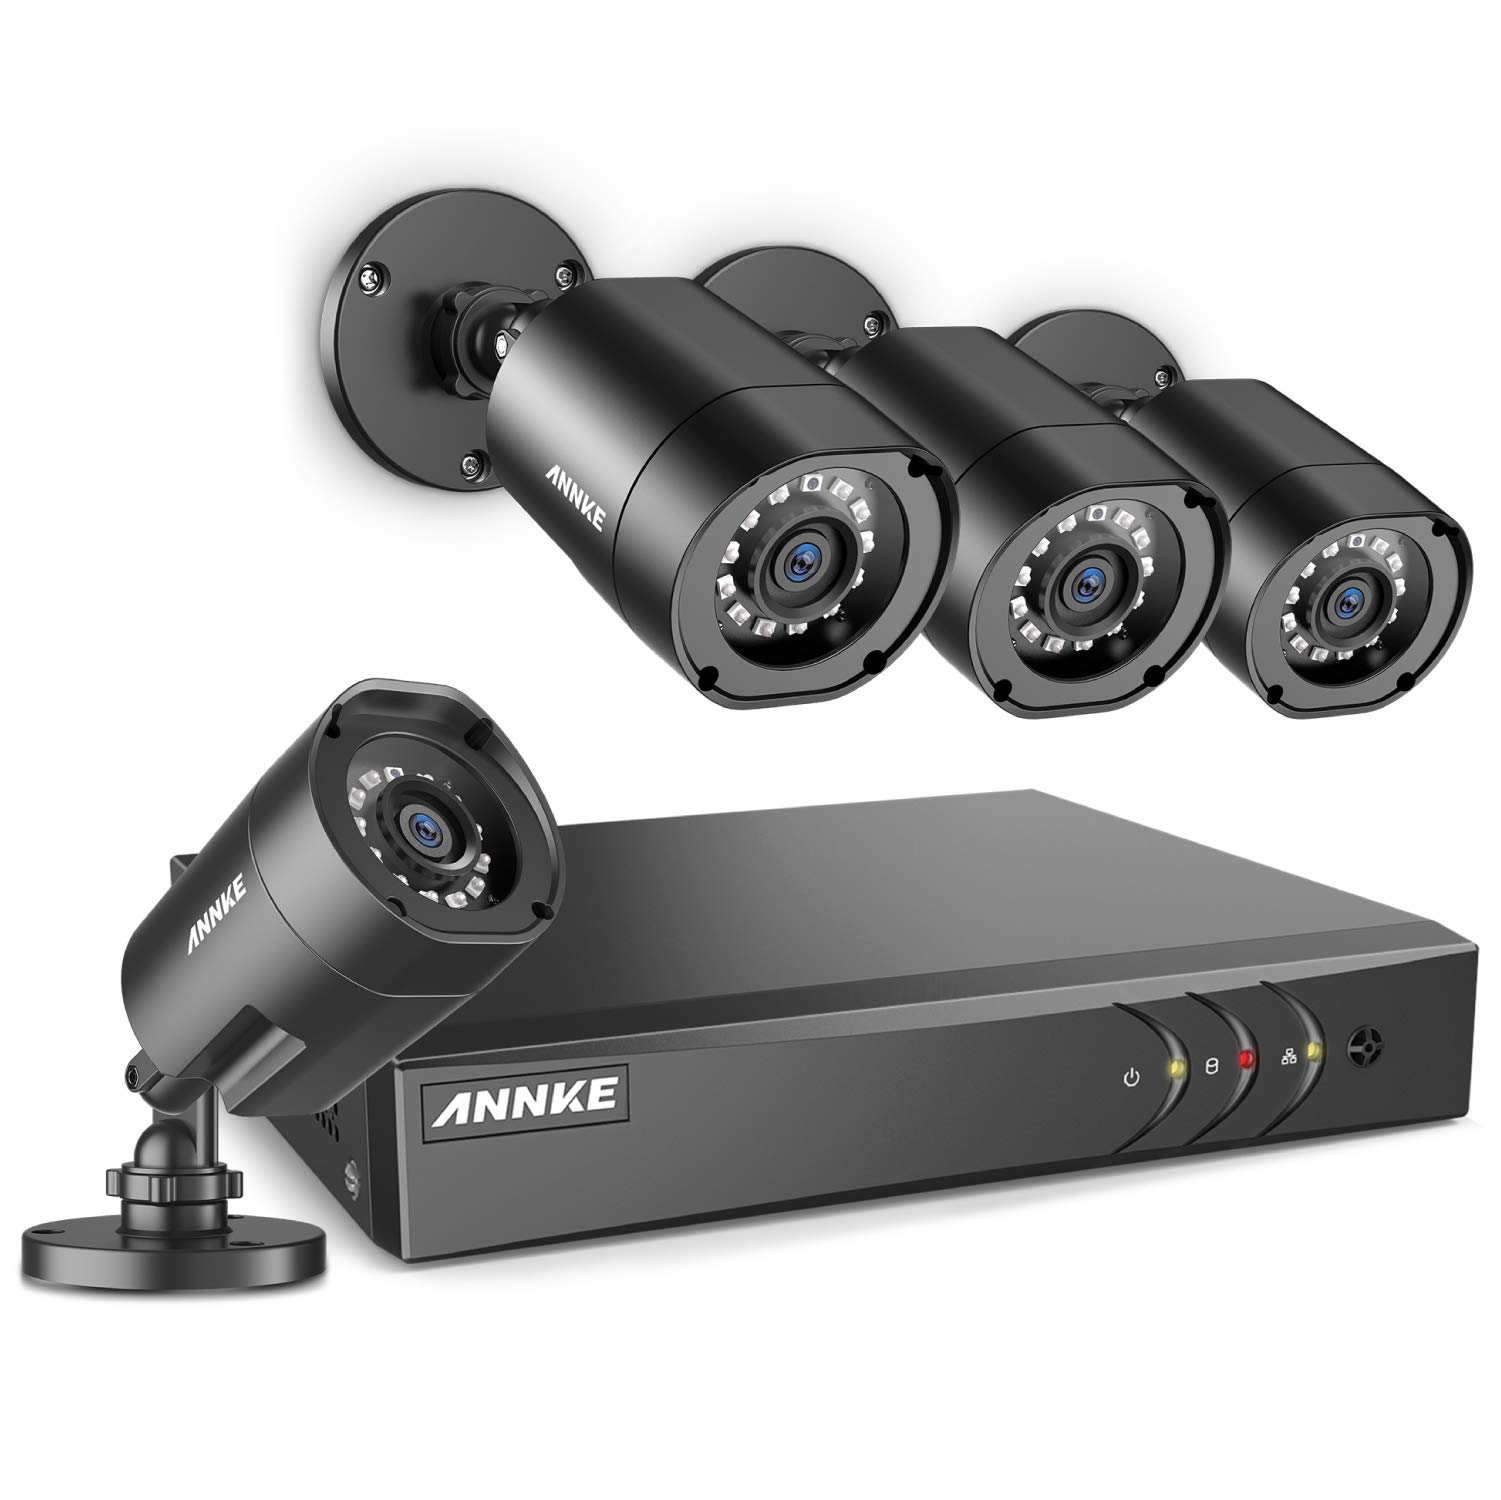 ANNKE Security Camera System 4X 1080P Weatherproof Bullet CCTV Cameras and 4CH 1080P Lite DVR Recorder, H.264+ 1080P HDMI Output, Motion-Triggered Email Alert and Easy Remote View, NO Hard Drive by ANNKE